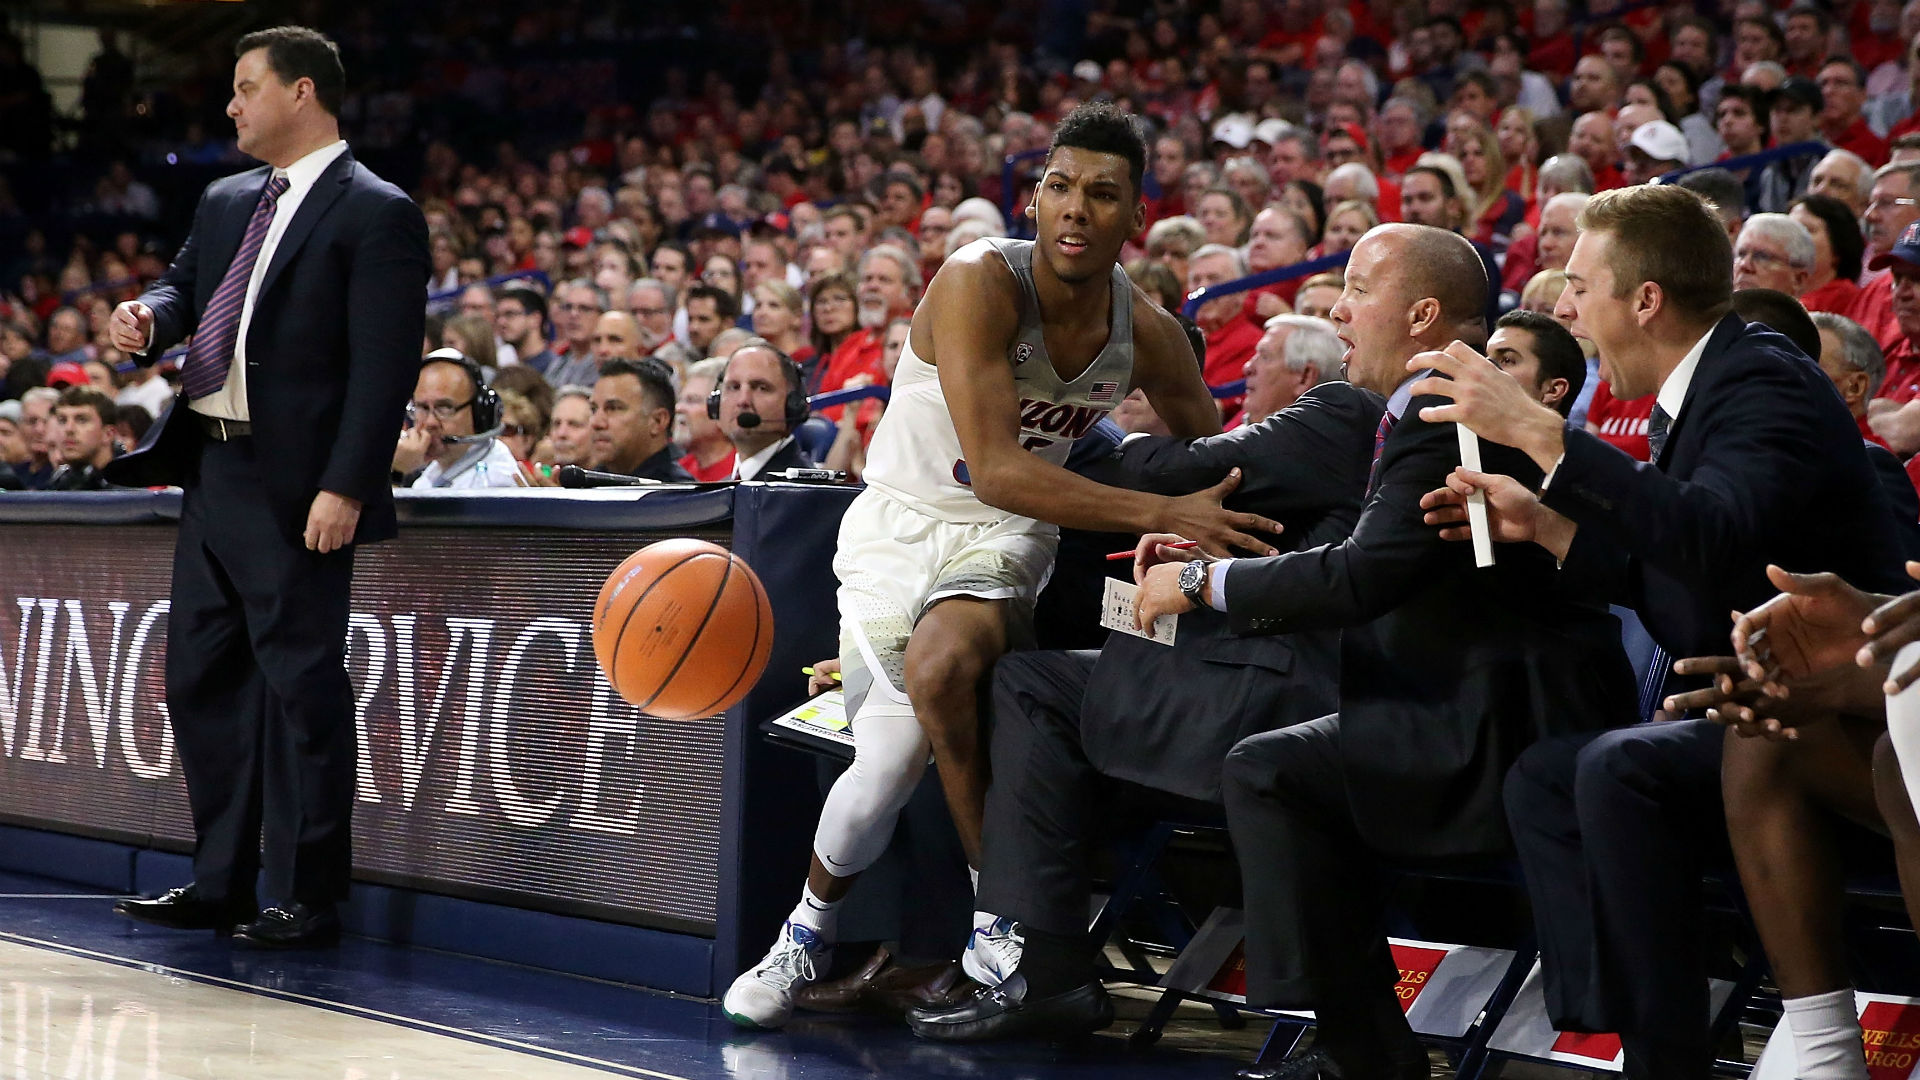 Arizona has seven problems much more concerning than top-25 ranking